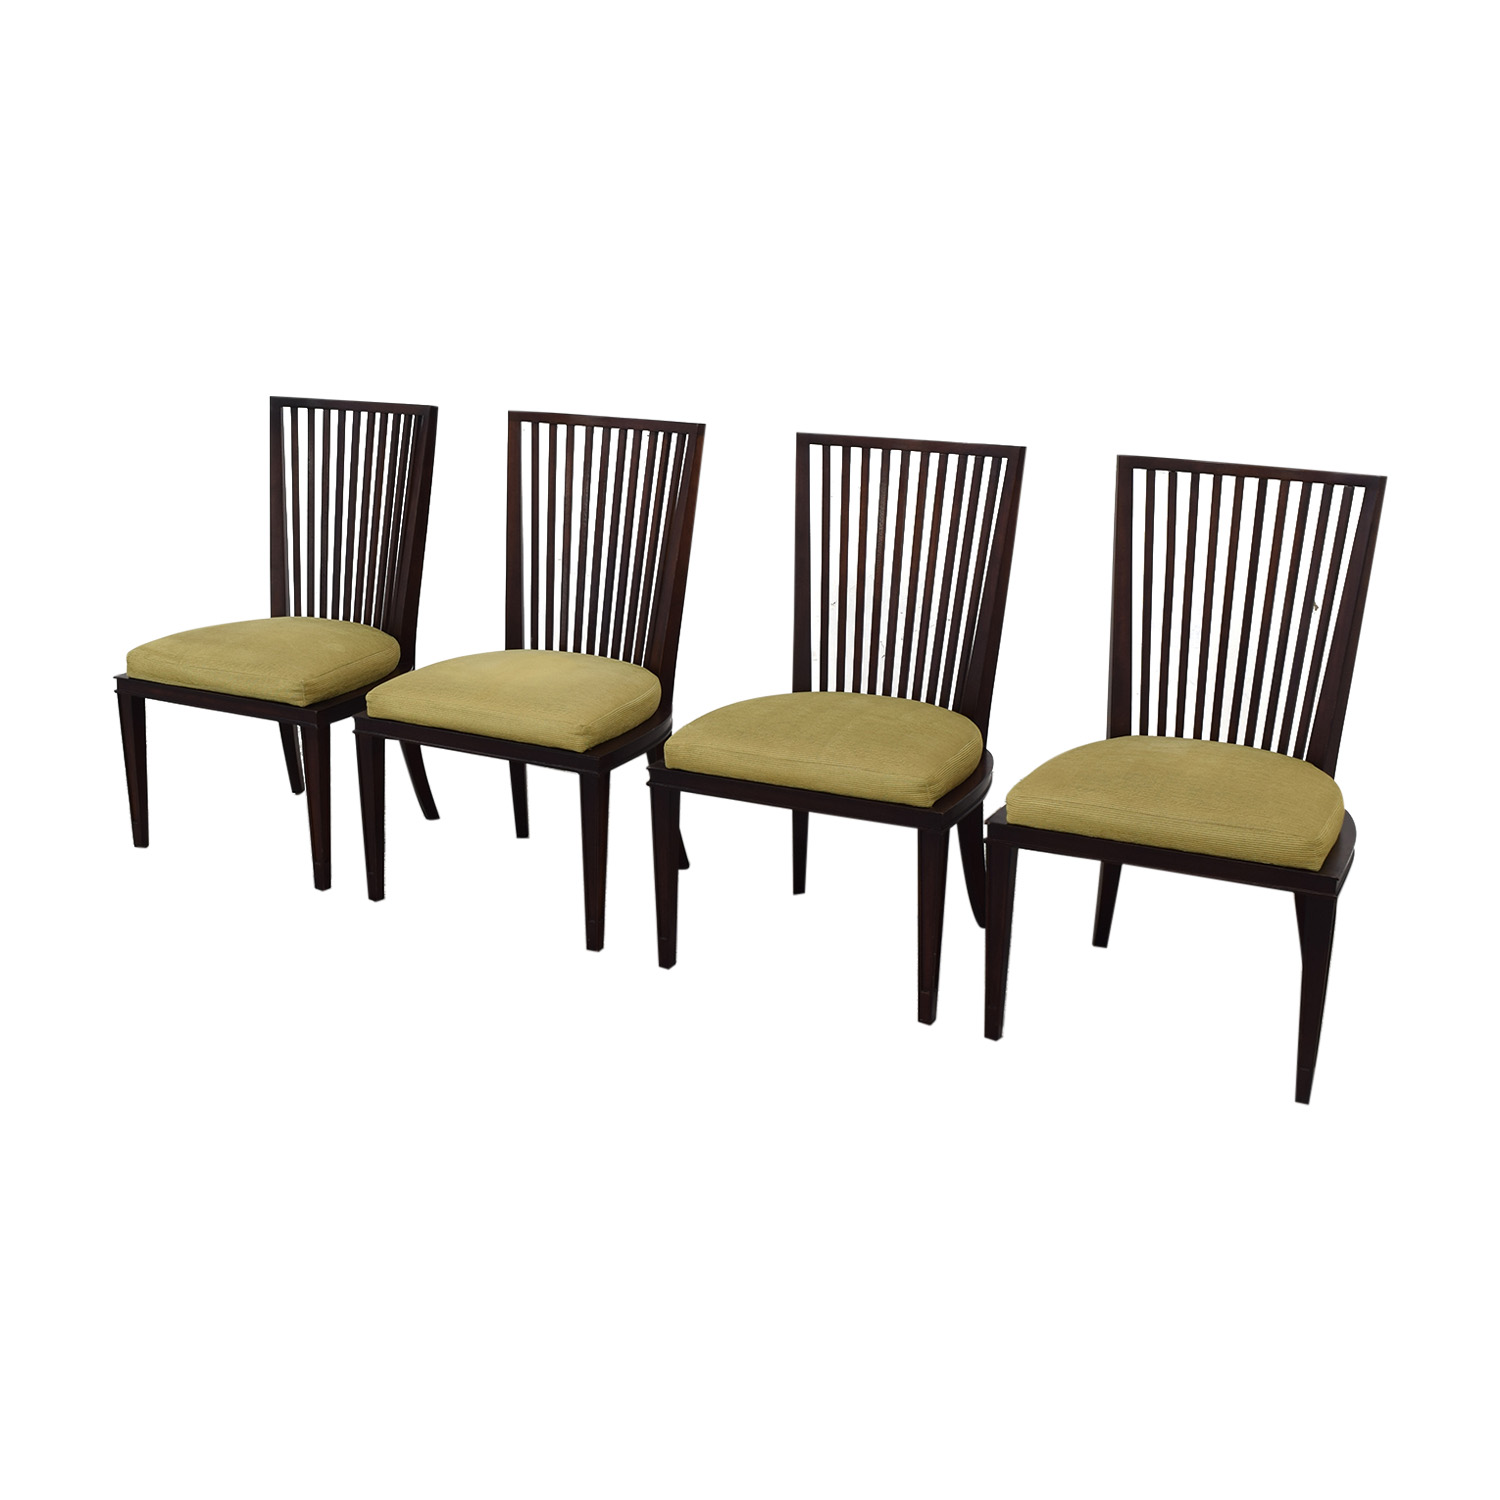 81 Off Baker Furniture Barbara Barry By Dining Room Chairs